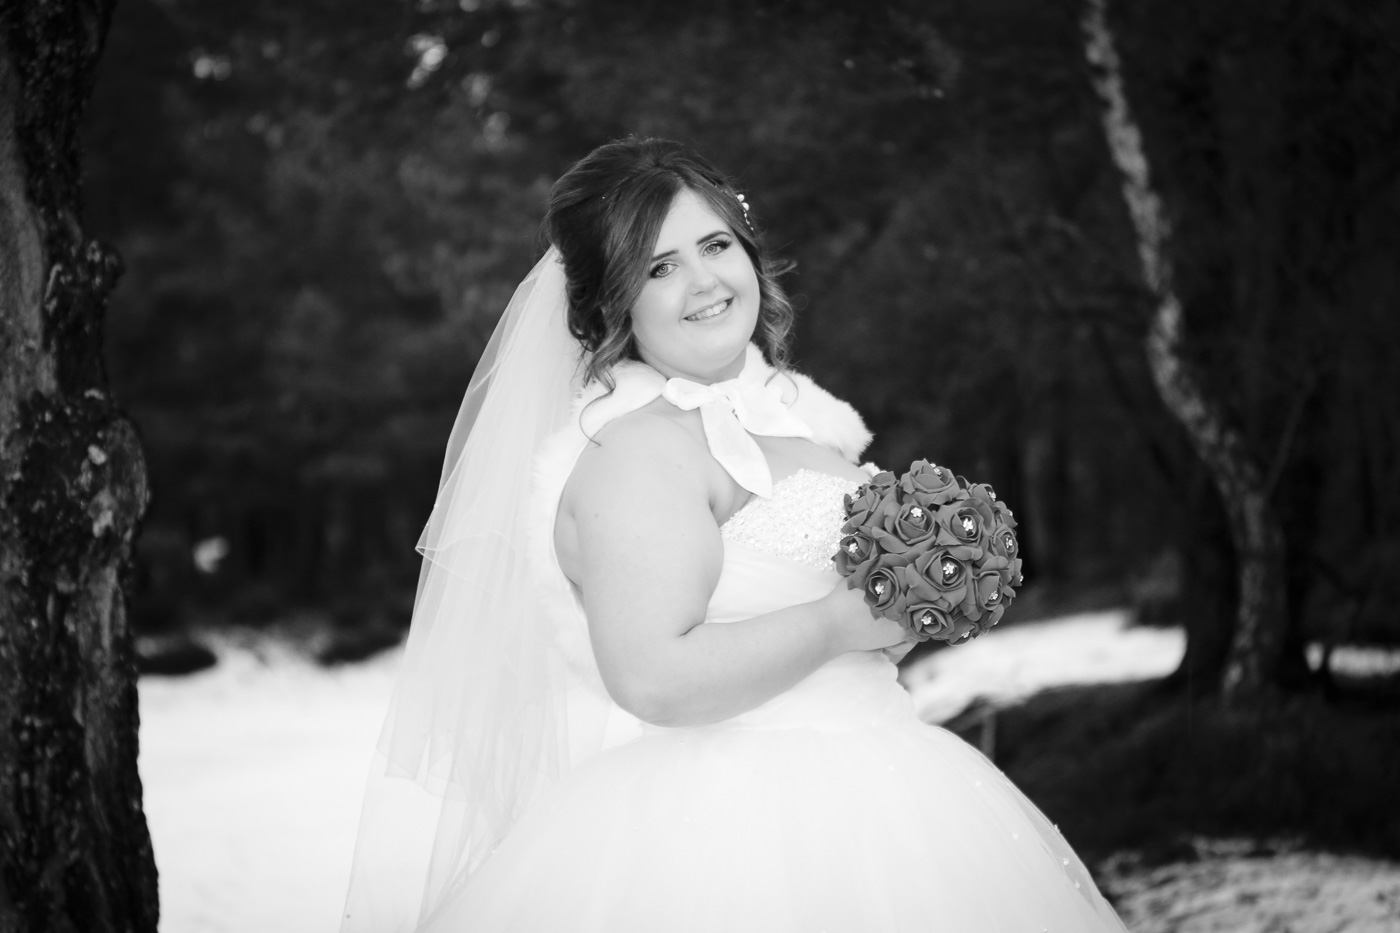 wedding-photography-at-the-hilton-coylumbridge-aviemore-8032-2